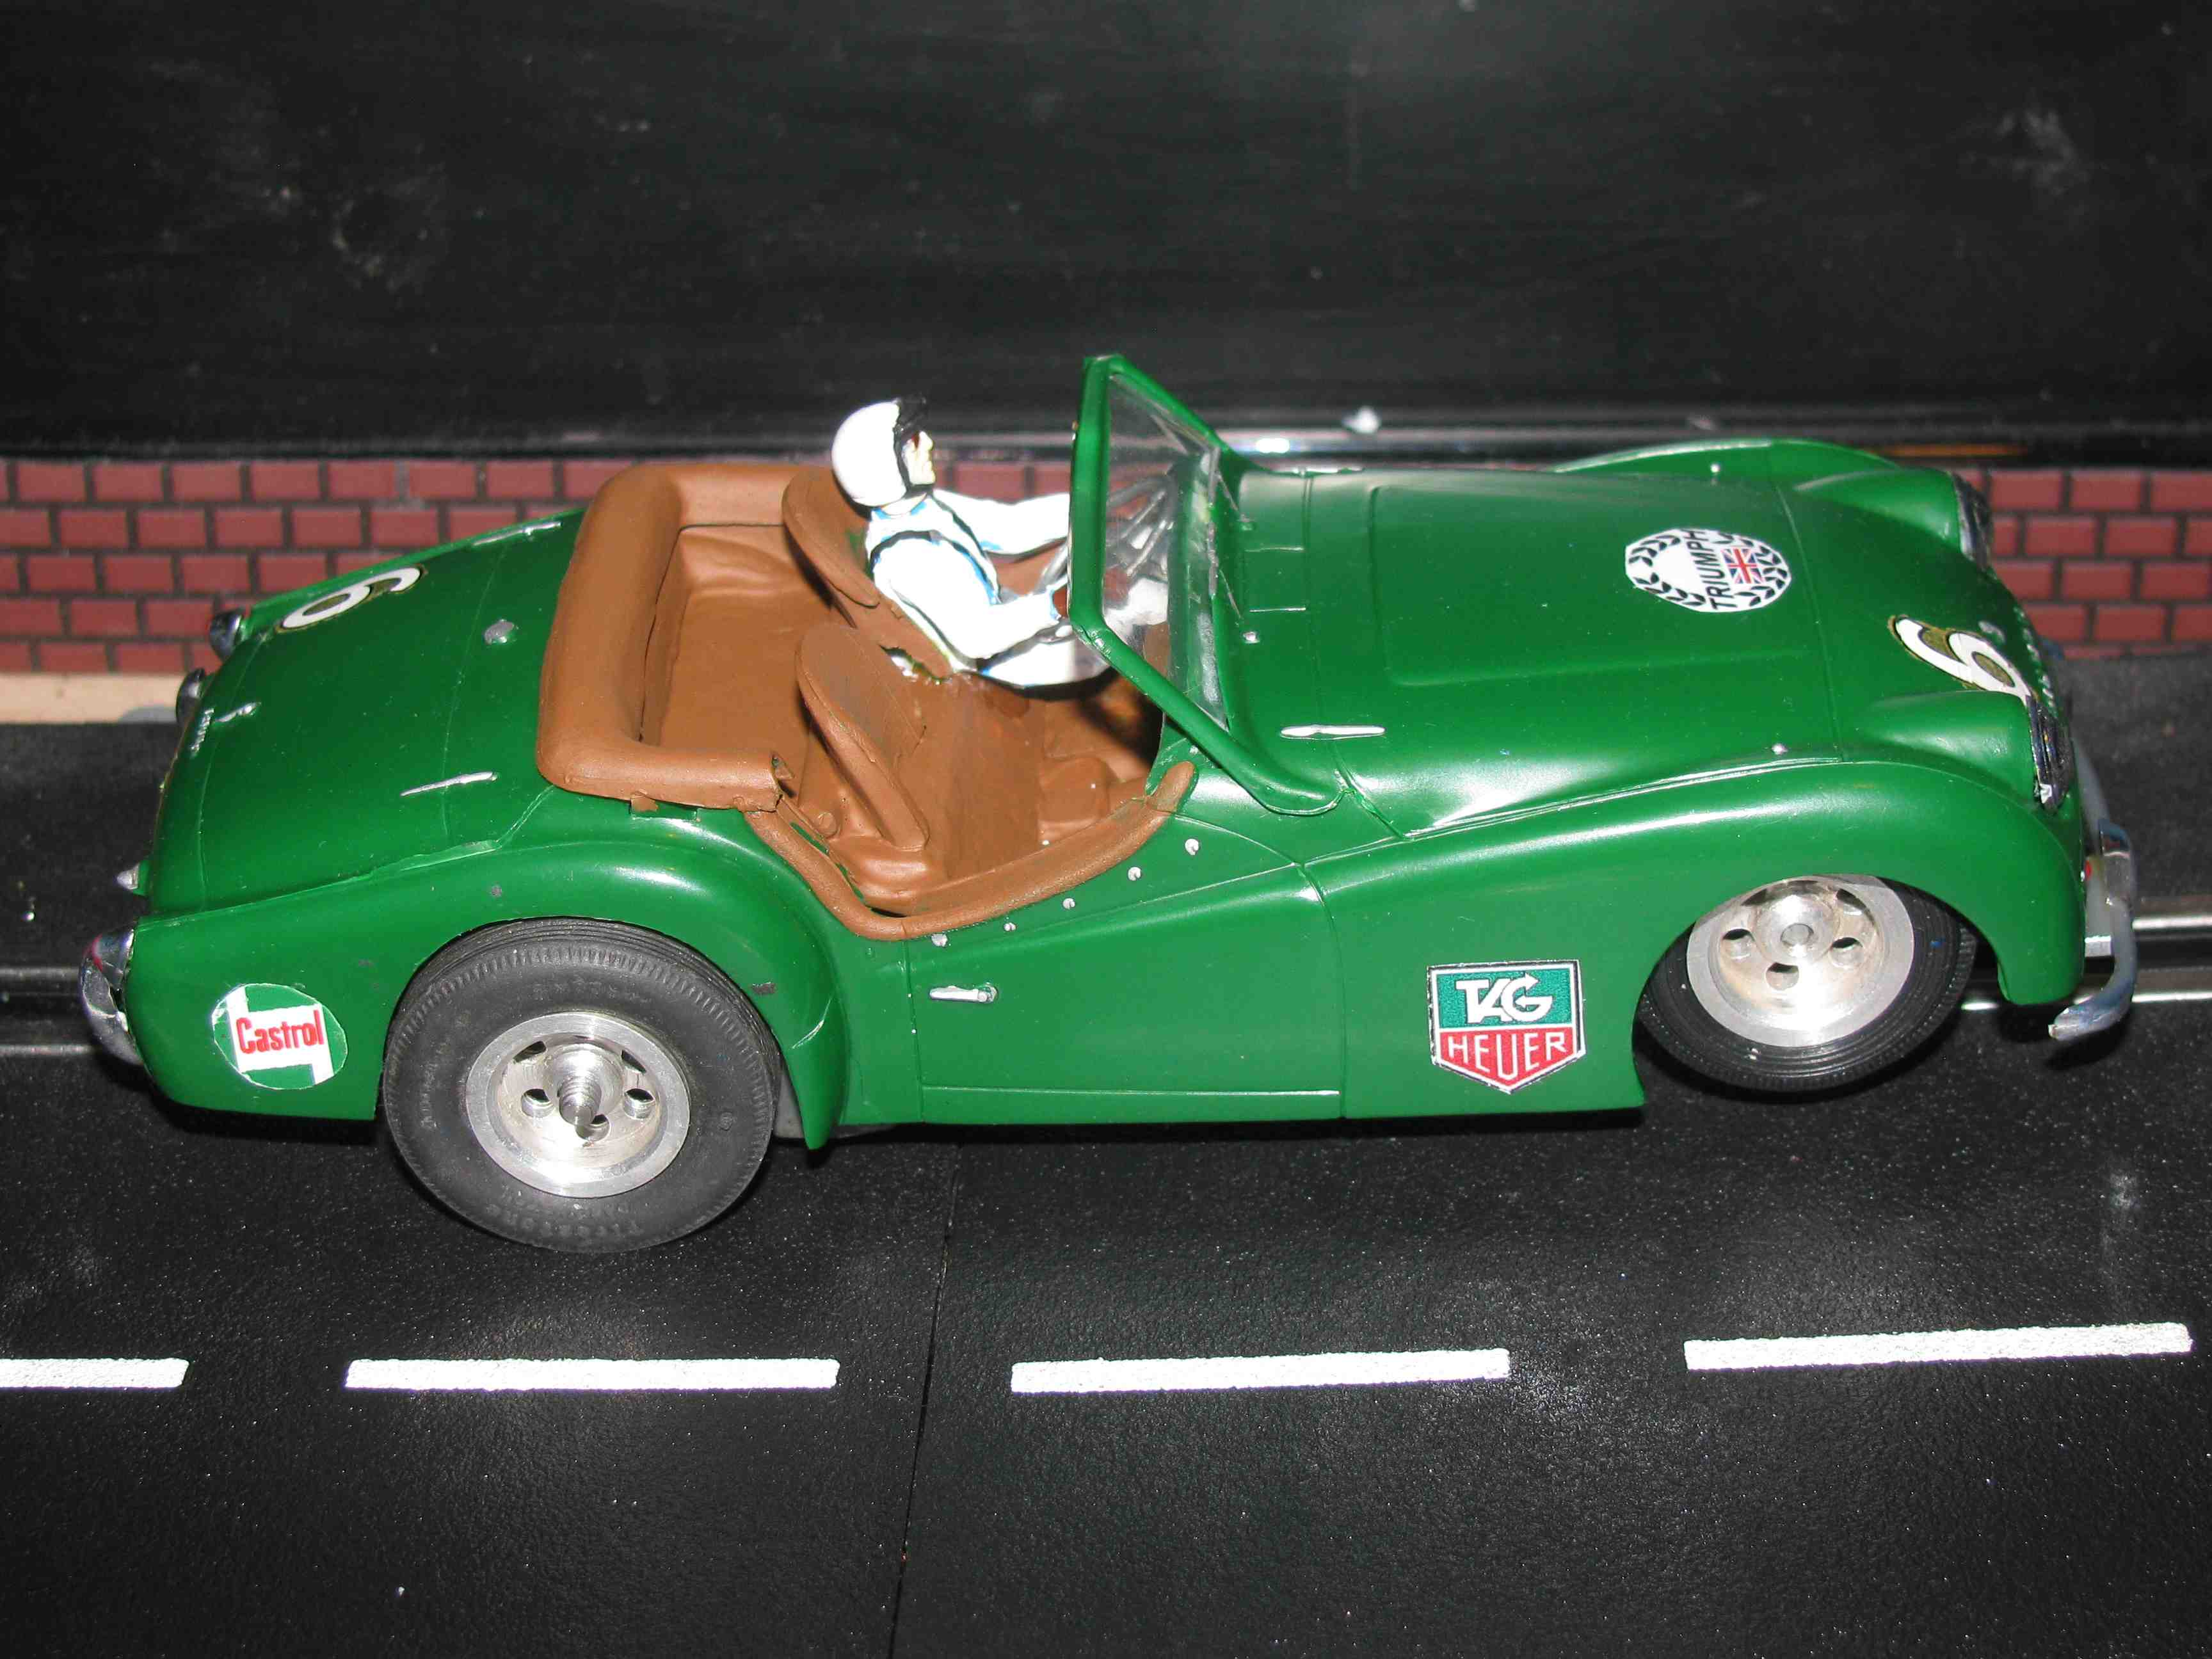 * SOLD * Vintage 1961 Triumph TR3 Overdrive Slot Car 1/24 Scale